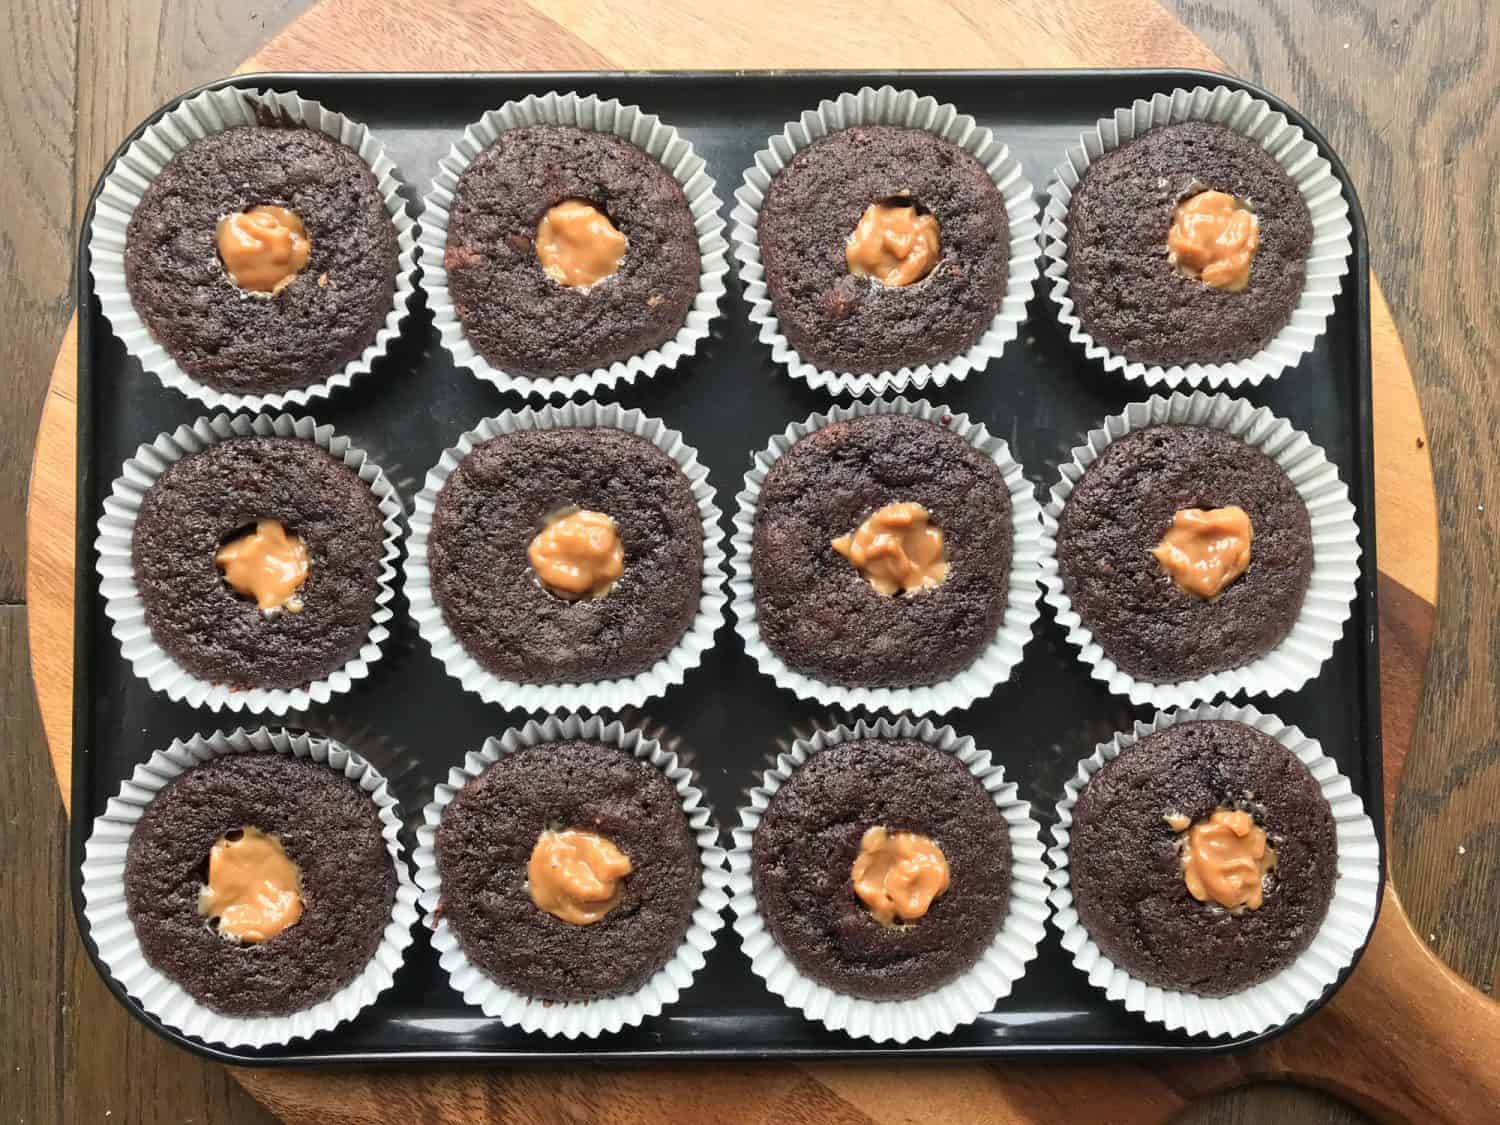 A tray of 12 chocolate cupcakes with holes in the centre. Each hole has been filled with caramel sauce.